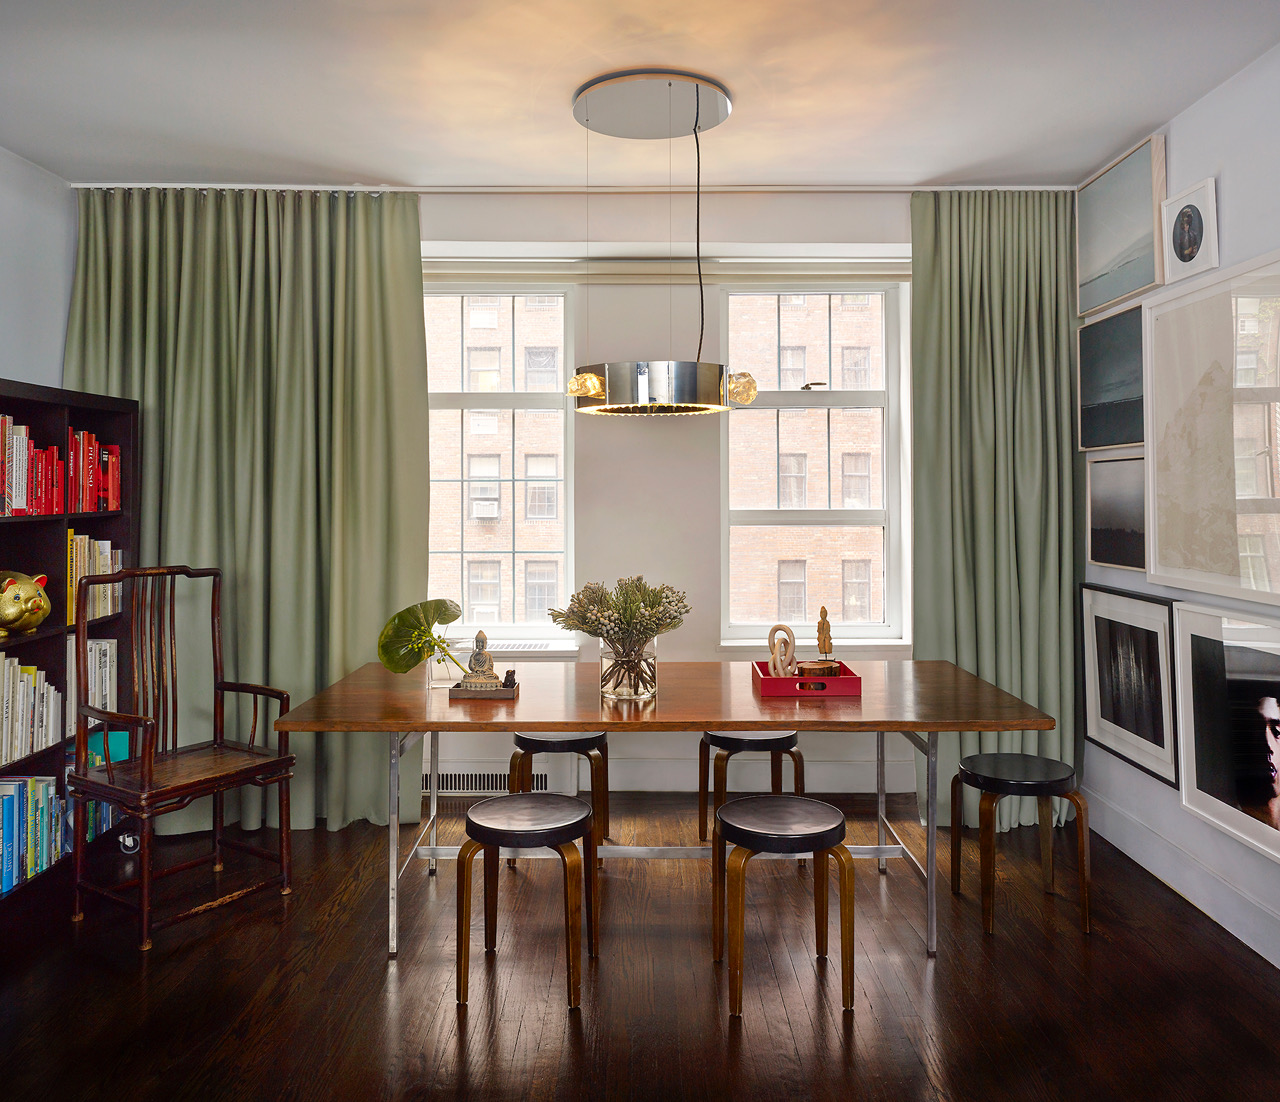 The Cozy New York Apartment D.B. Kim Calls Home